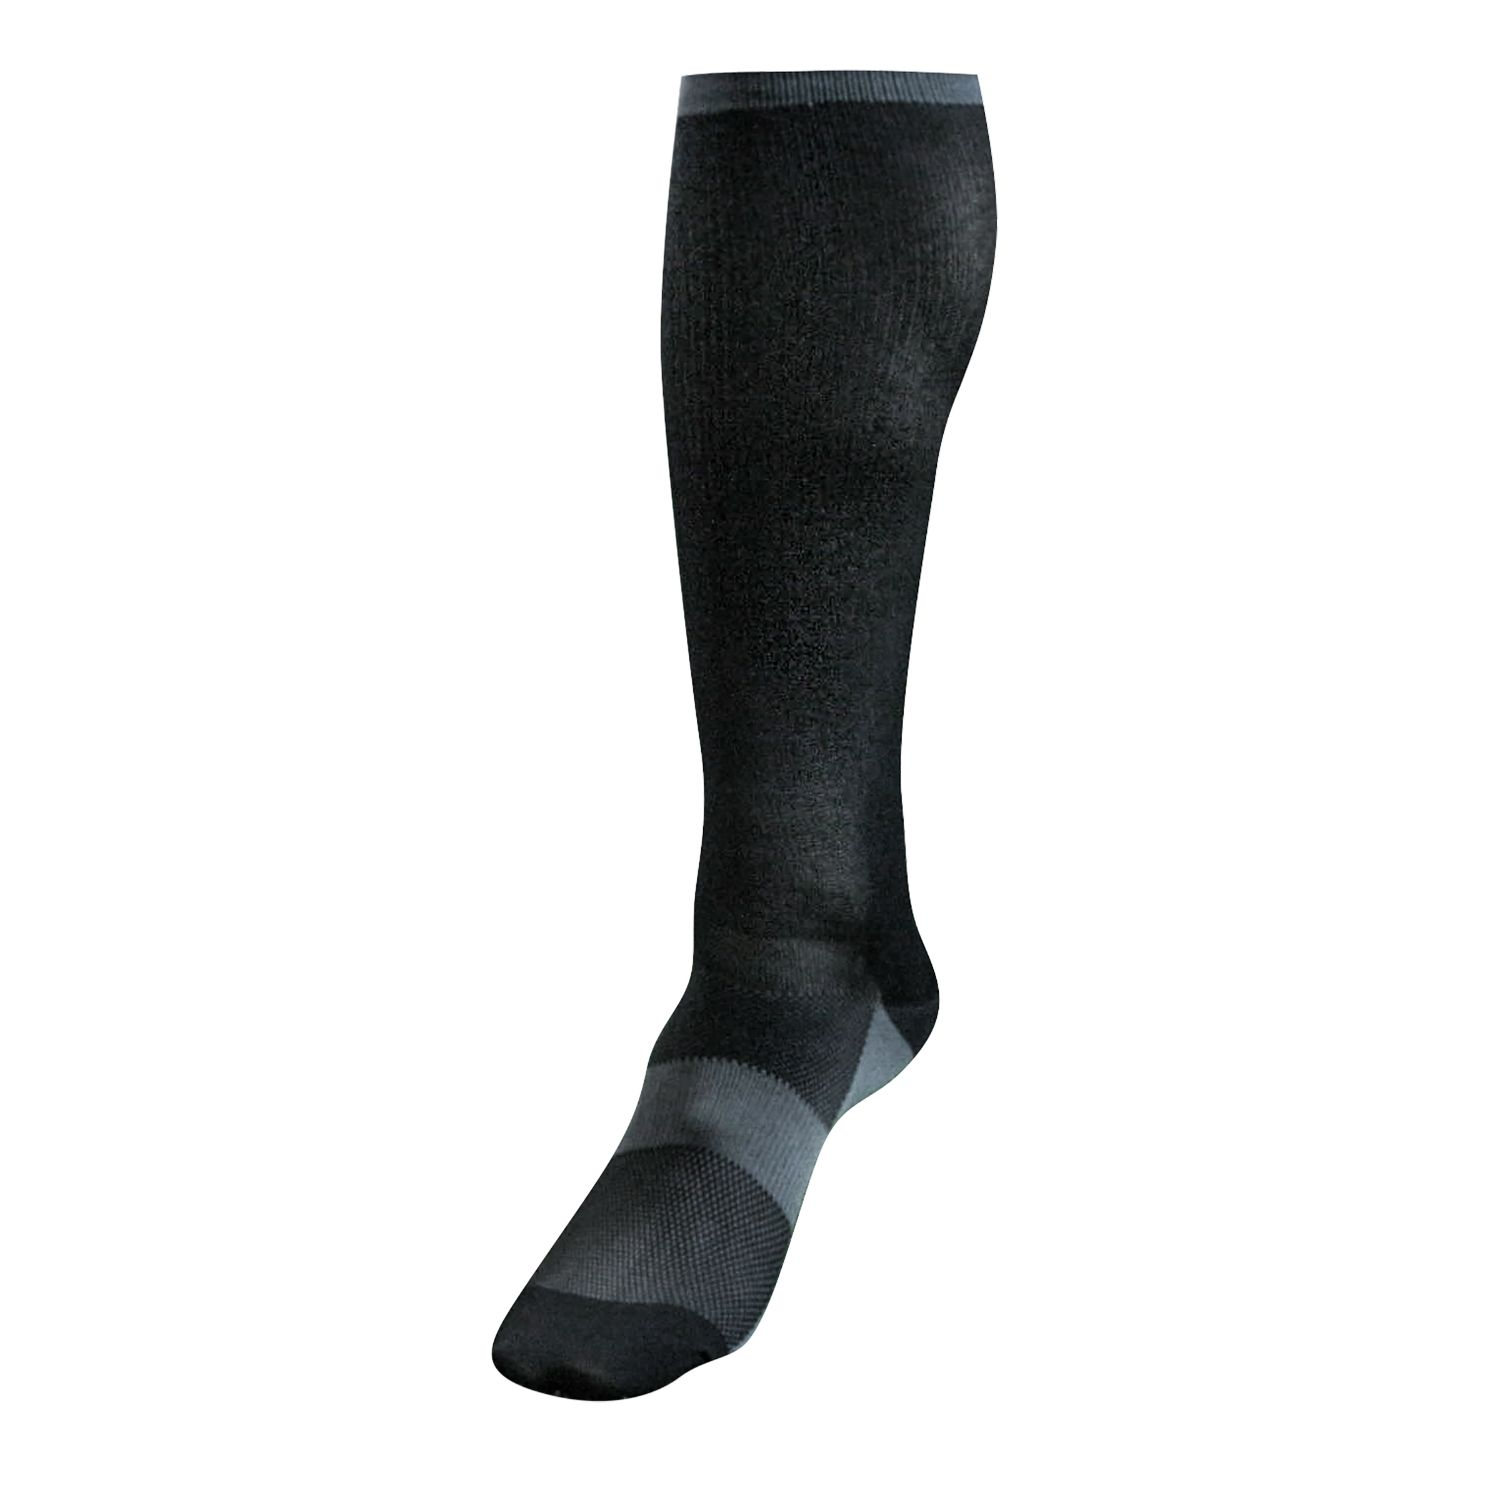 Champro Skate Baselayer Hockey Sock Black Extra Small